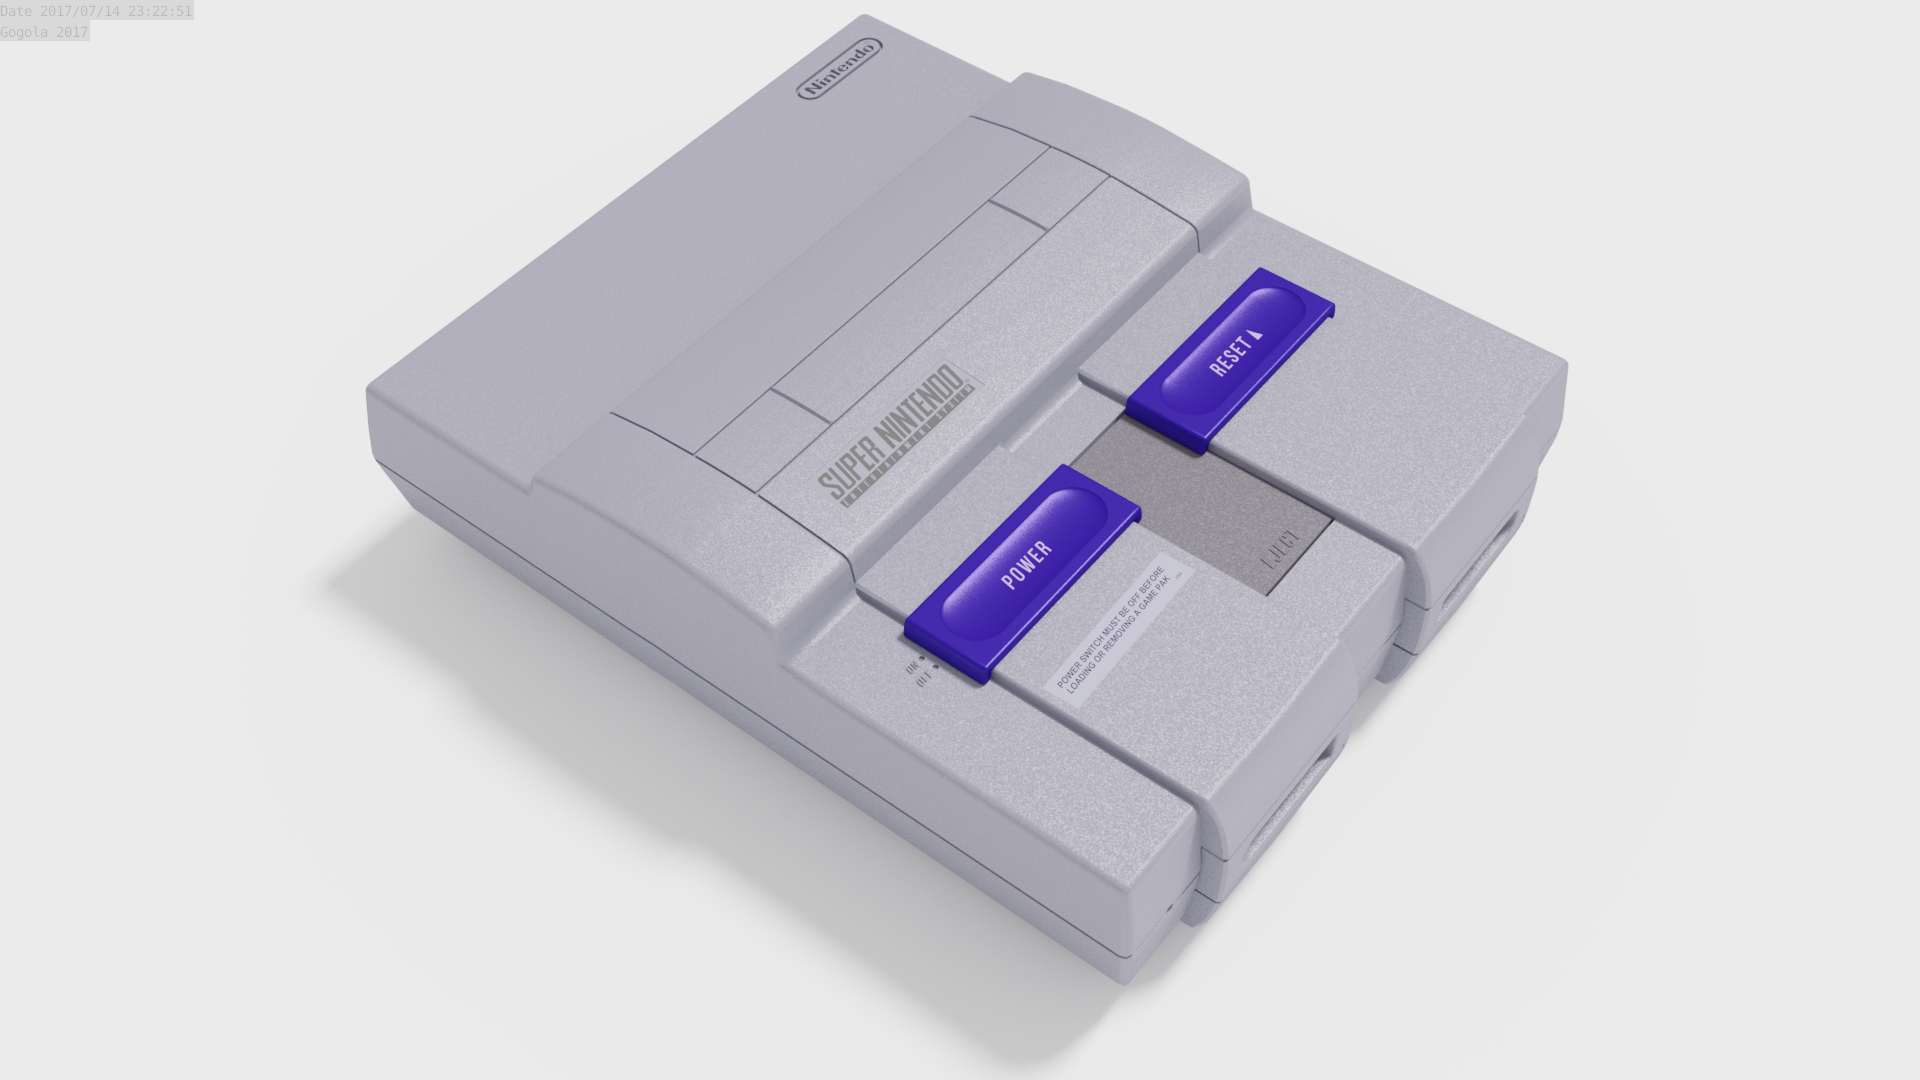 Snes Photorealistic